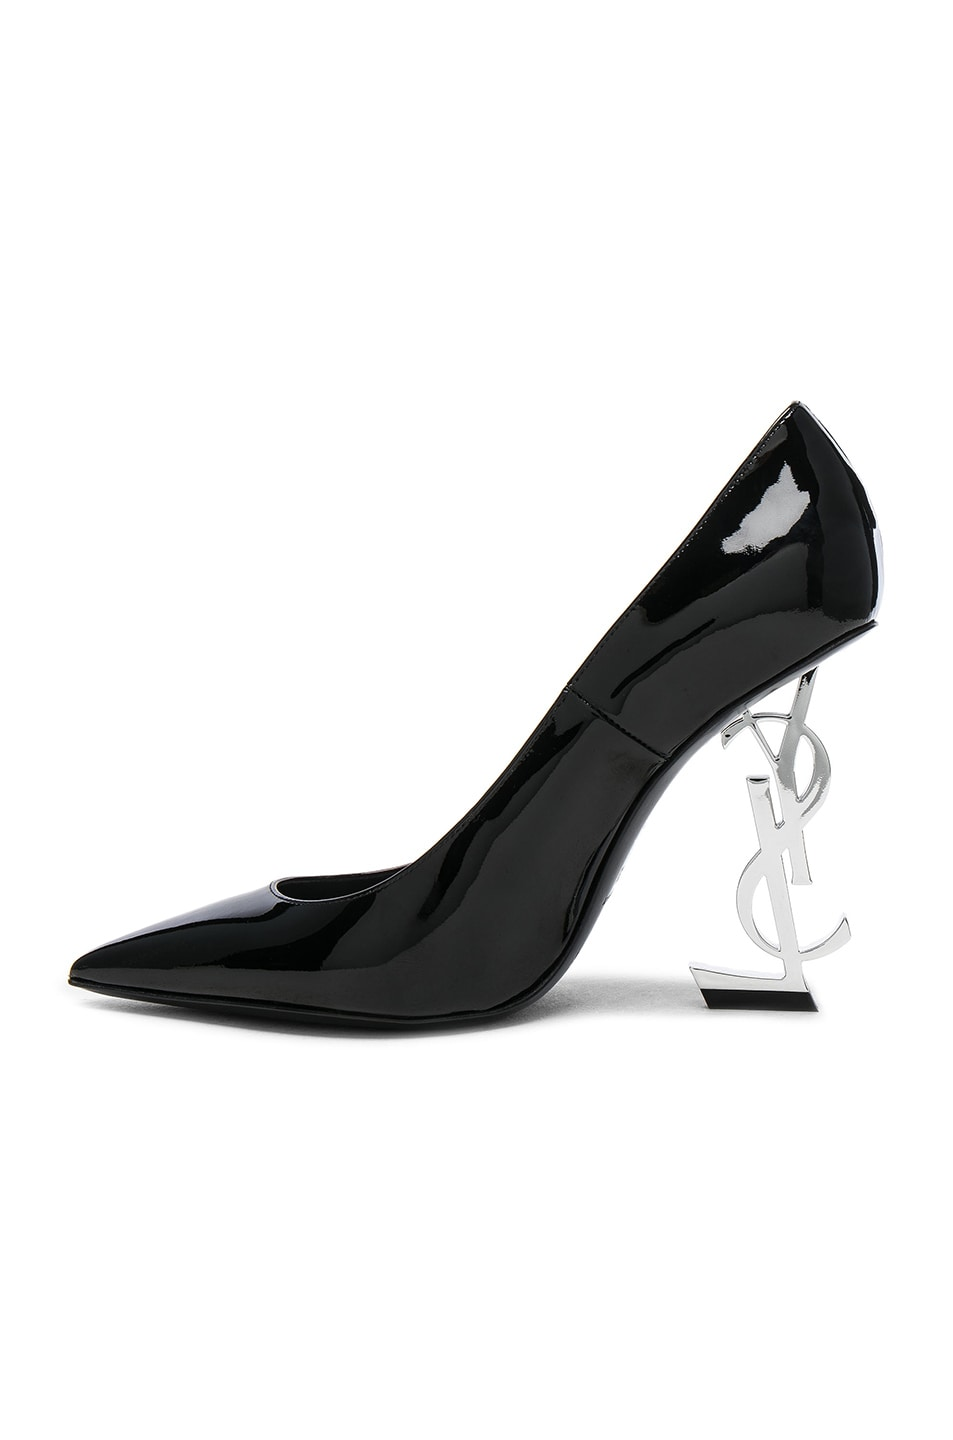 Image 5 of Saint Laurent Opium Patent Monogramme Heels in Black & Silver